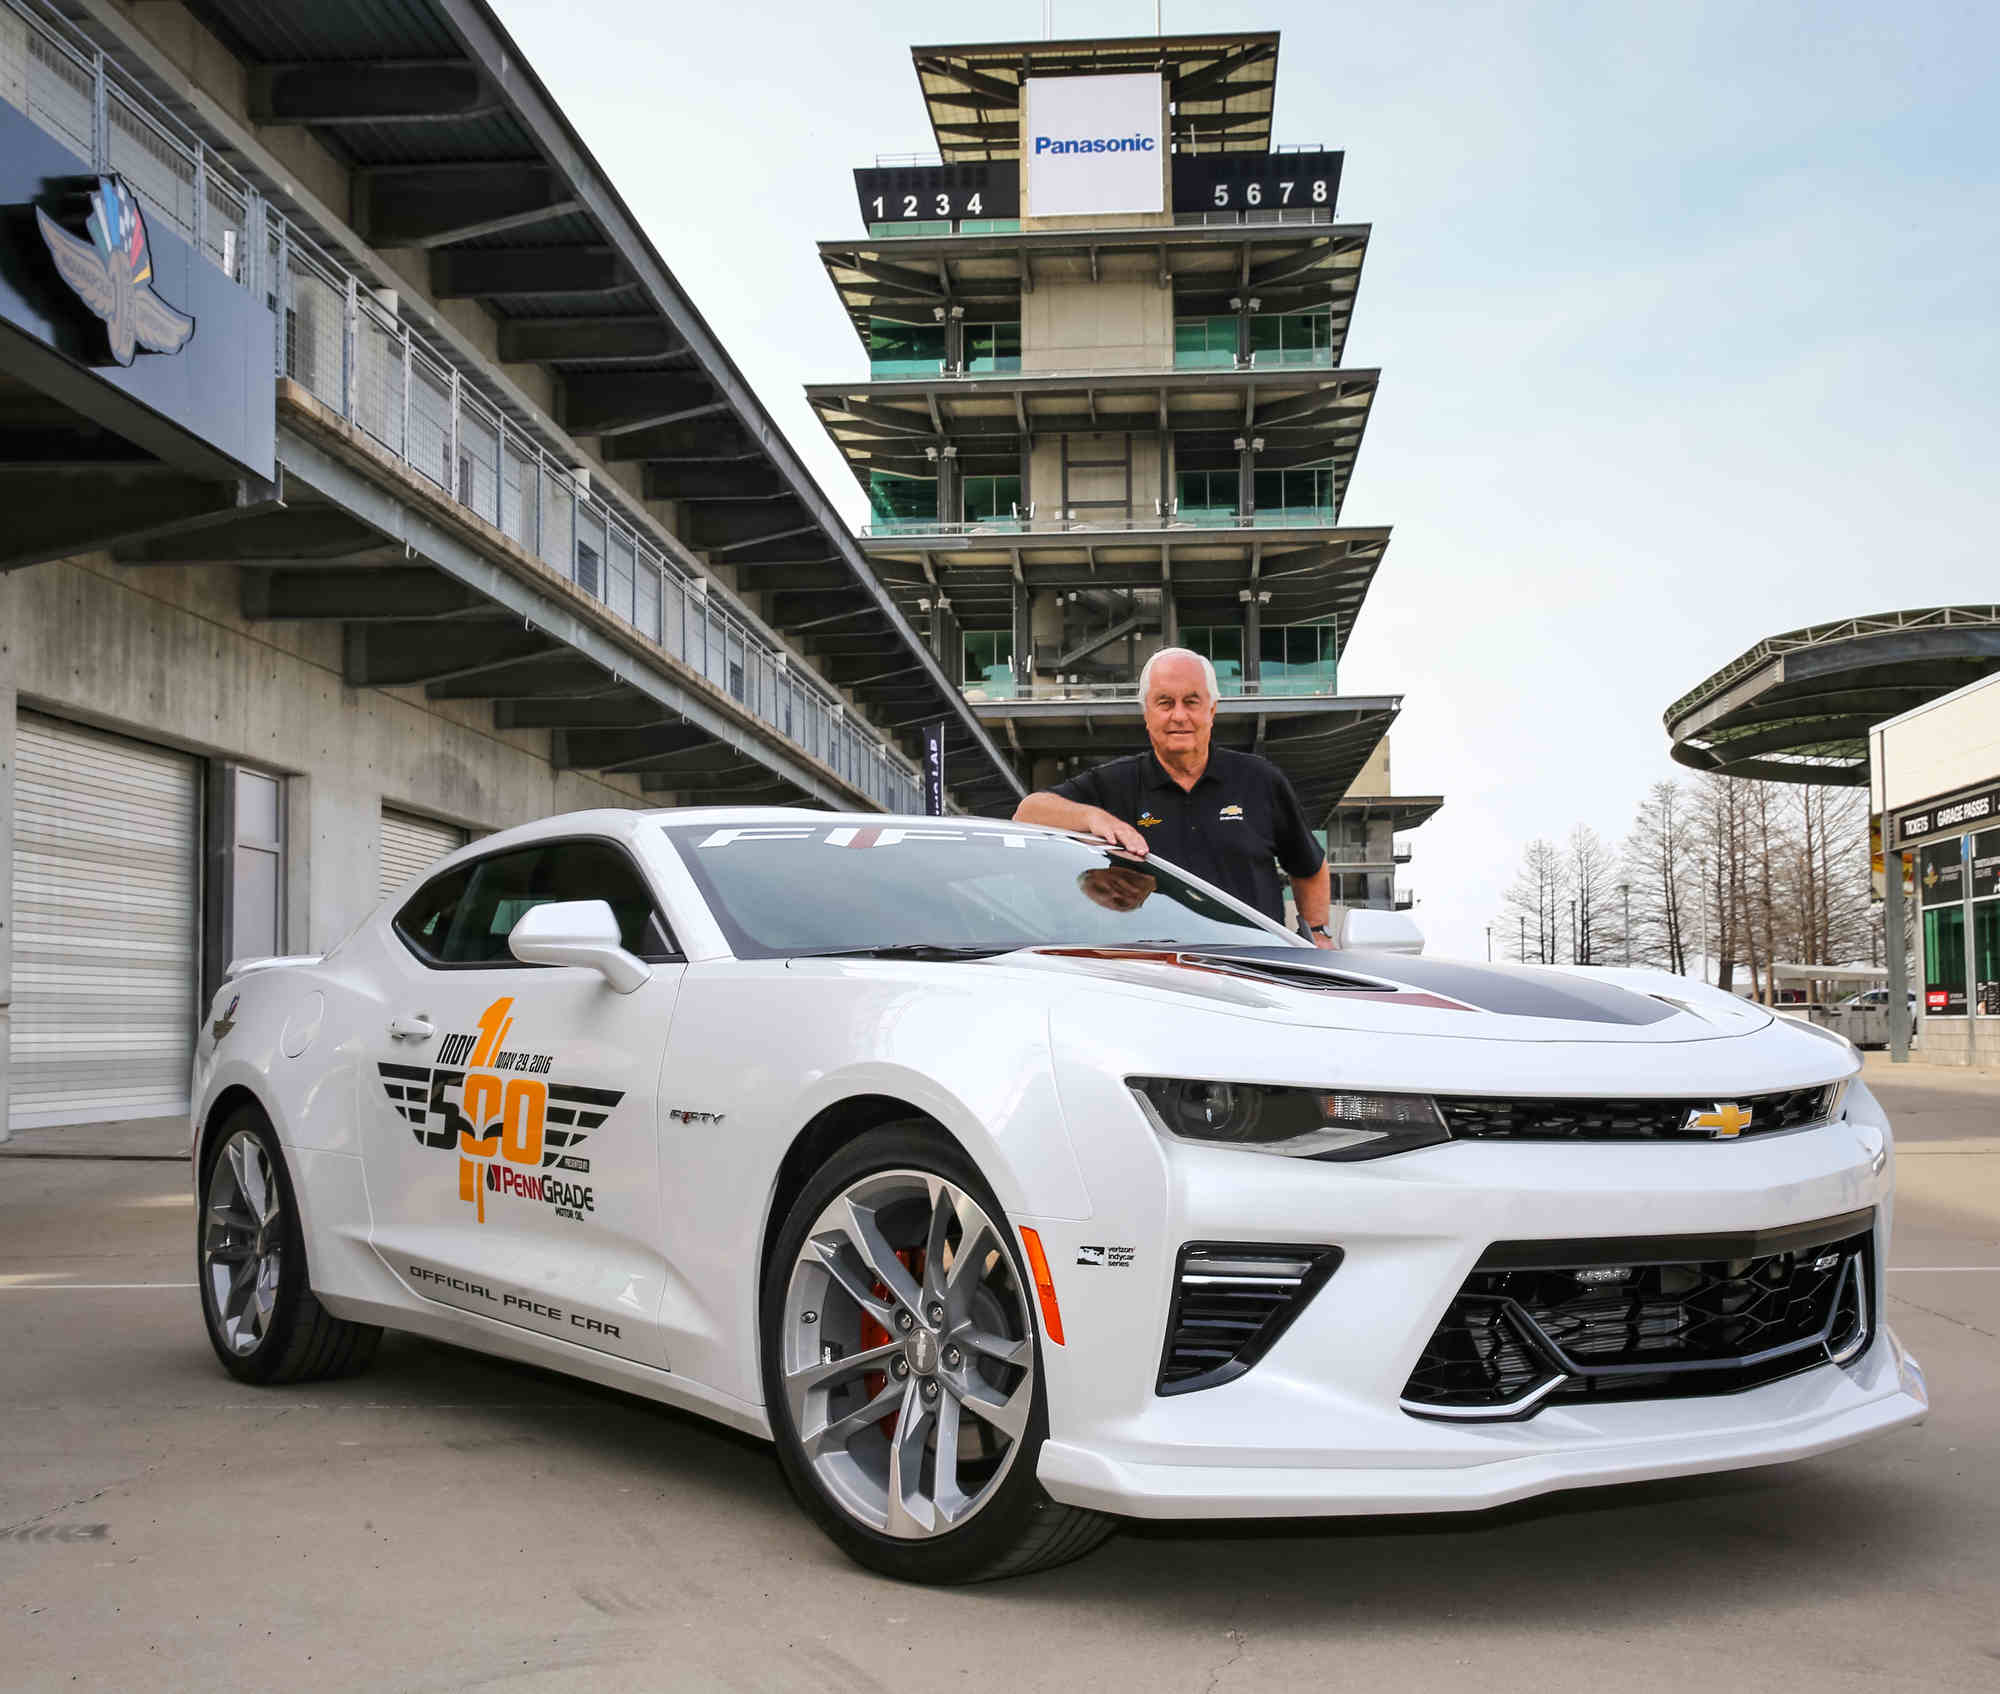 The 2017 Camaro SS 50th Anniversary Edition will lead the 100th running of the Indianapolis 500 at the Indianapolis Motor Speedway in Indianapolis, Indiana next month, driven by motorsports legend Roger Penske, who is marking 50 years as a race team owner.